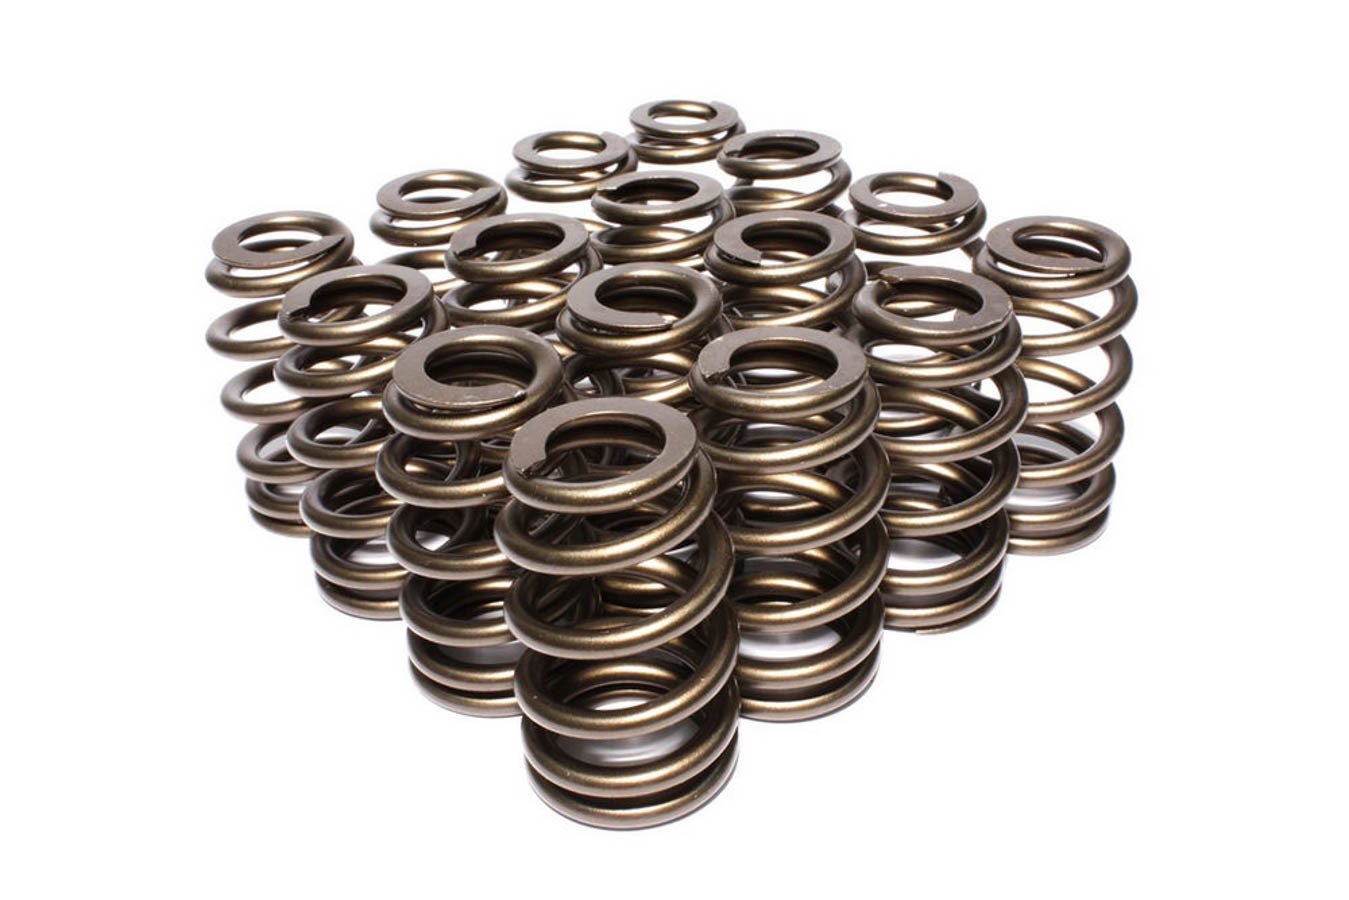 Comp Cams 26095-16 Valve Spring, Race Street, Beehive Spring, 300 lb/in Spring Rate, 1.130 in Coil Bind, 1.590 in OD, Set of 16